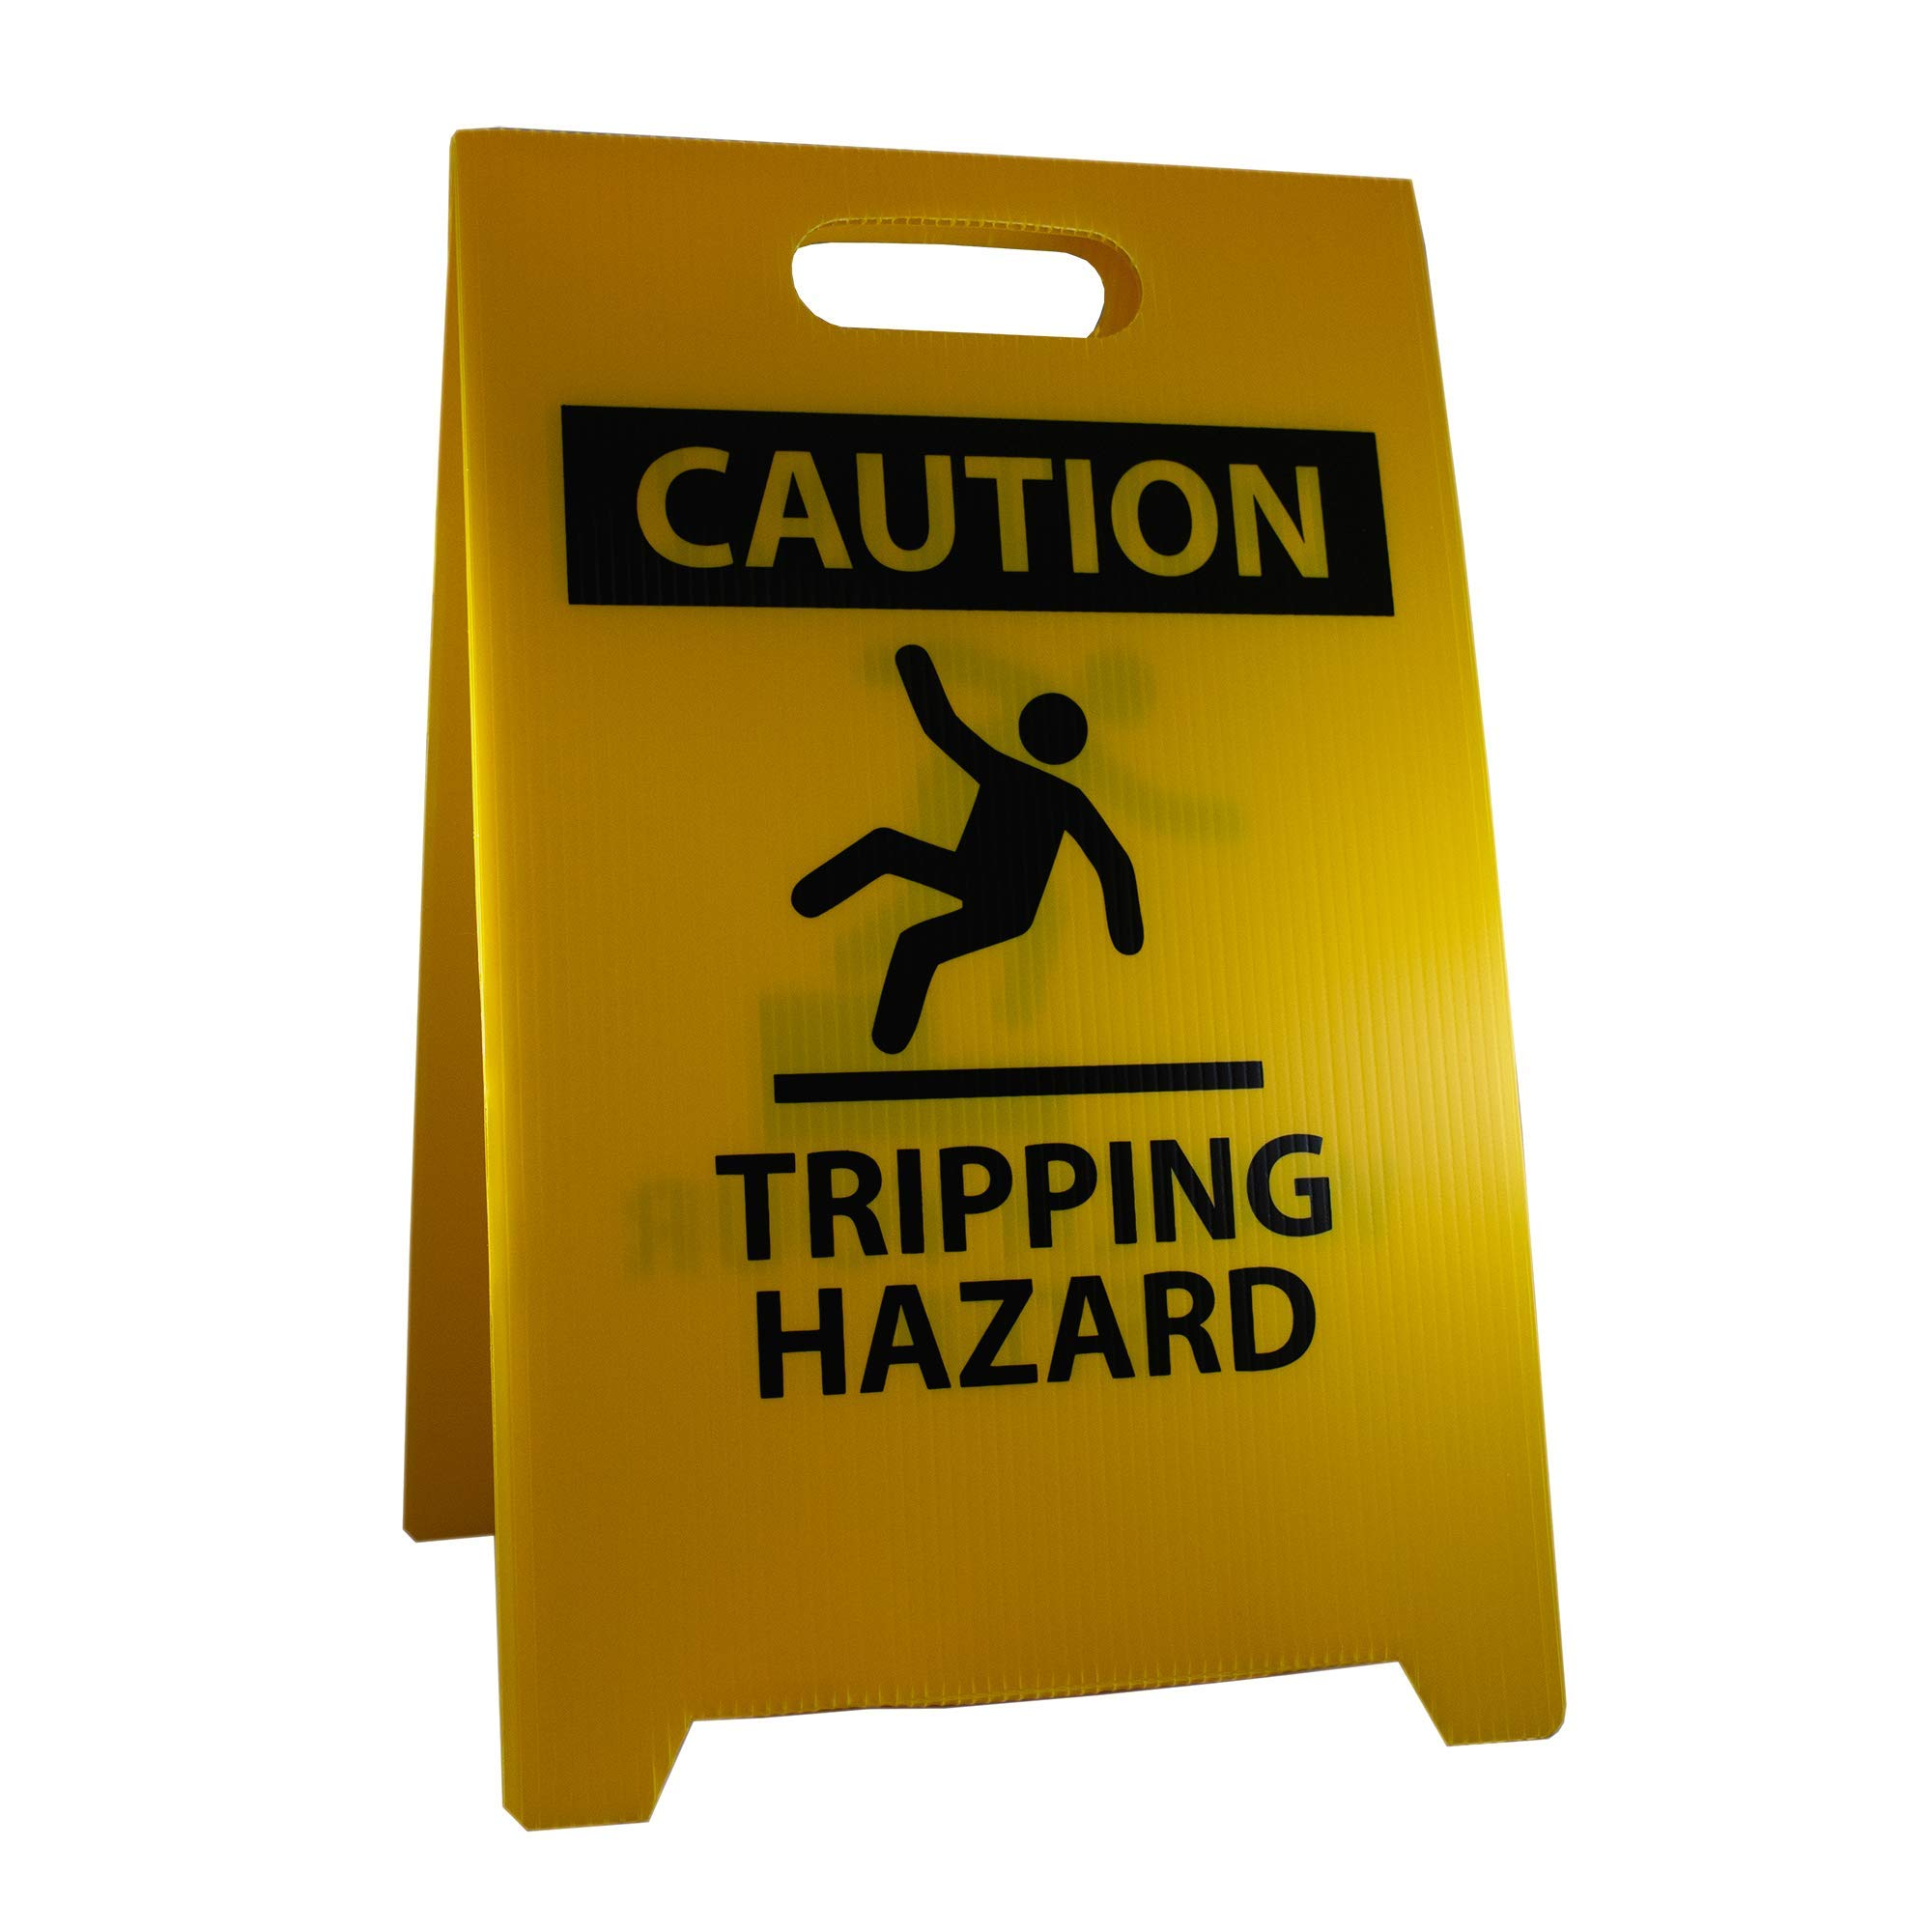 NMC FS36 Double Sided Floor Sign,''CAUTION TRIPPING HAZARD - WATCH YOUR STEPS'', 12'' Width x 20'' Height, Corrugated Polyethylene, Black on Yellow